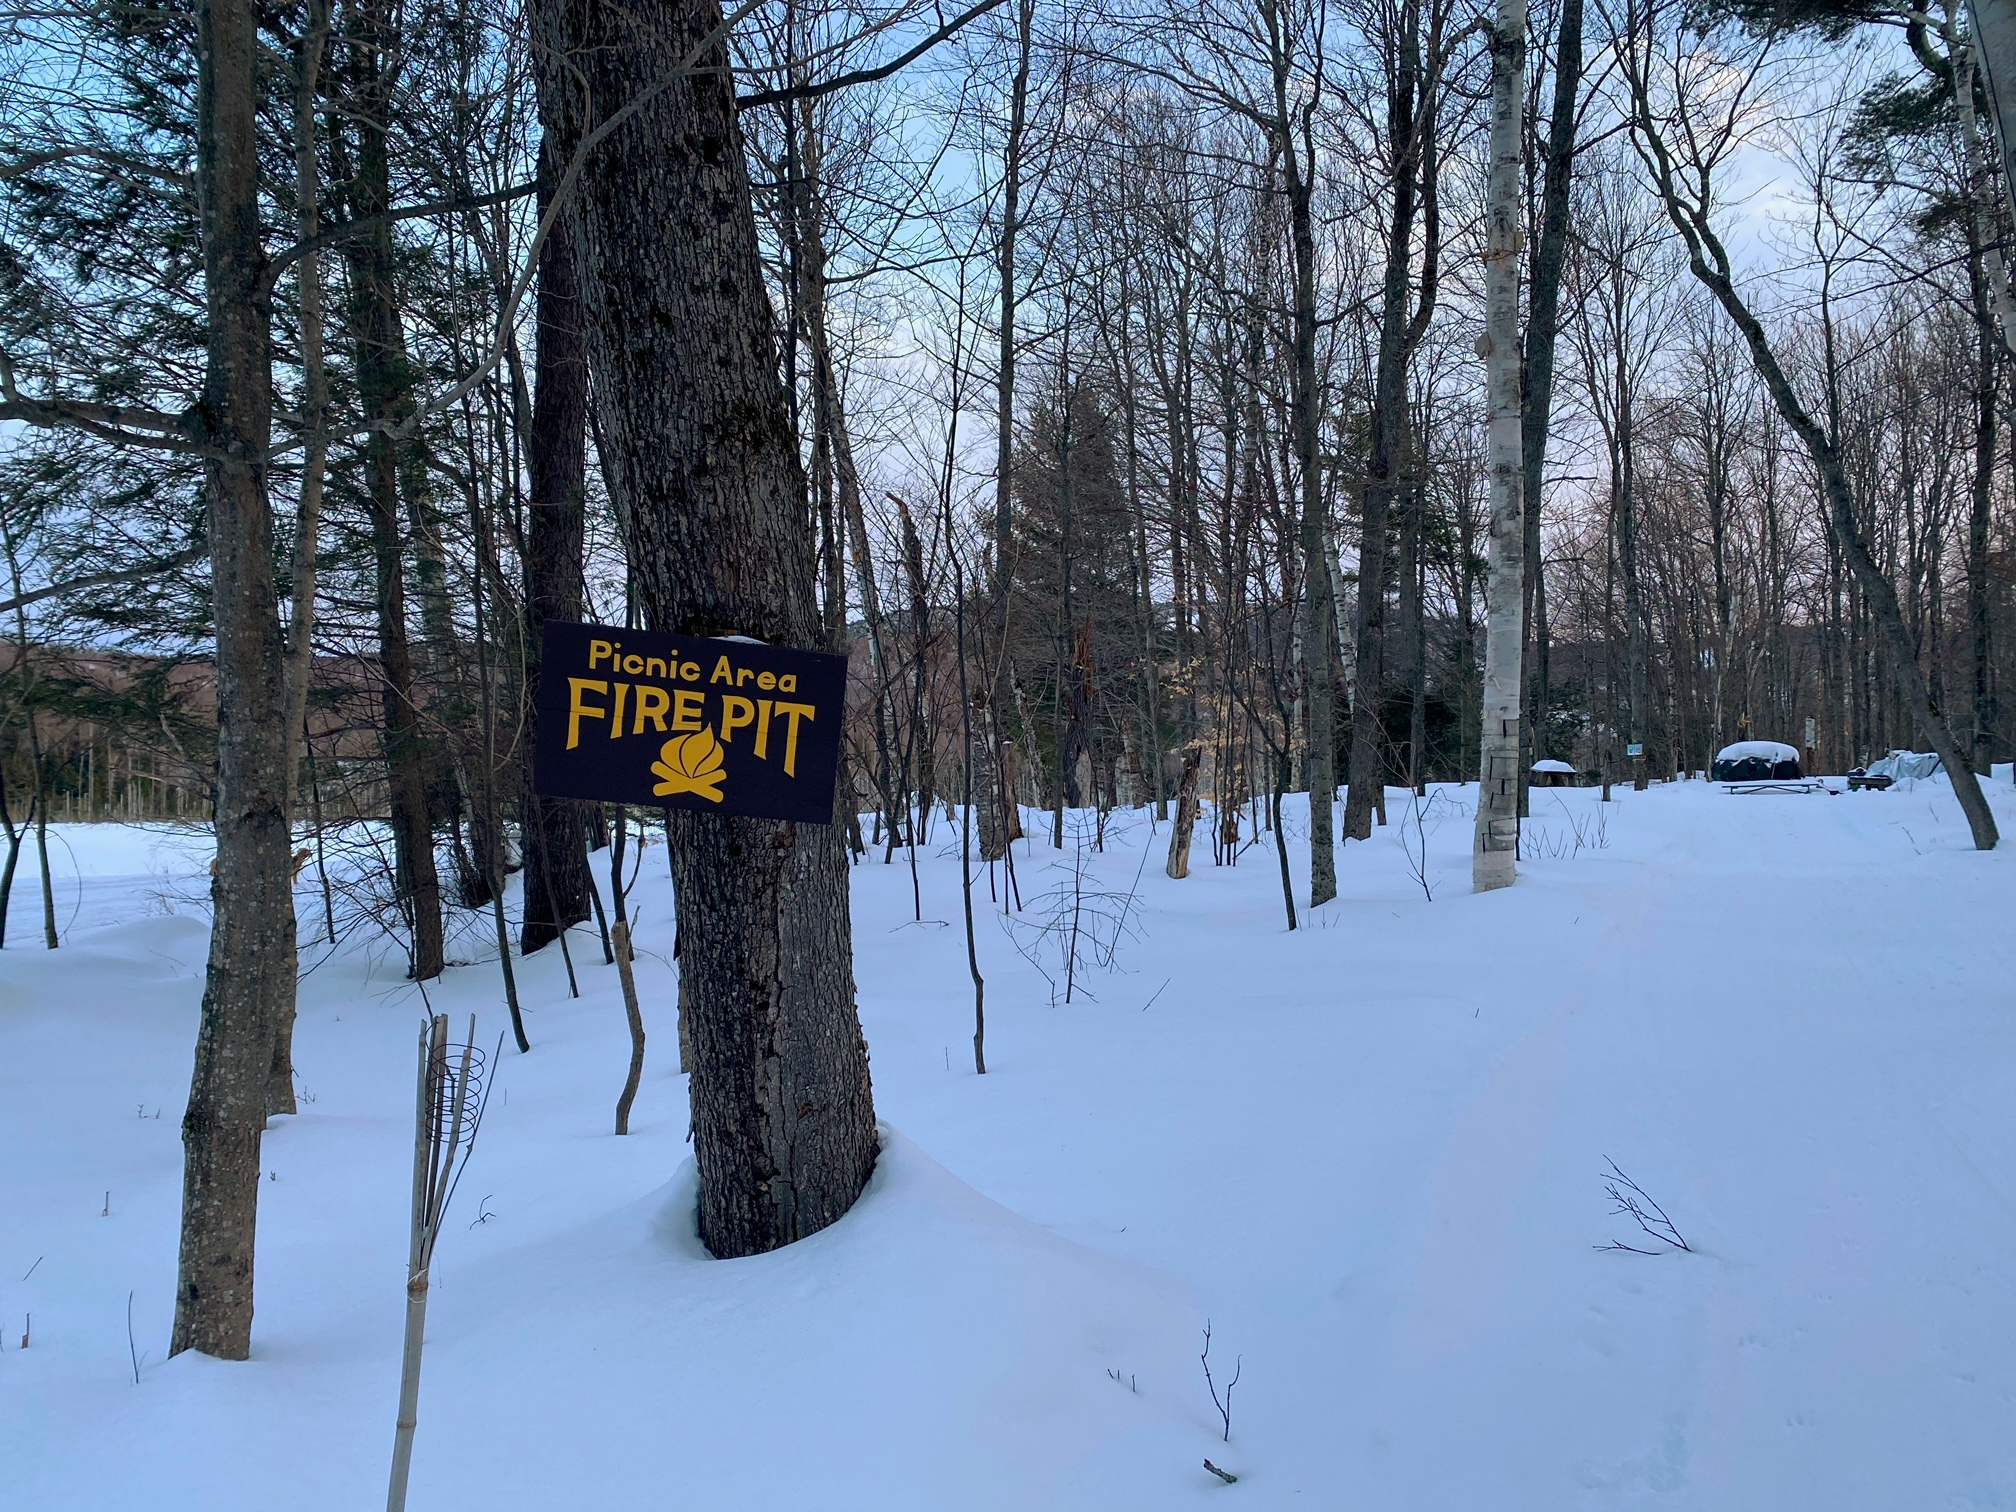 Sign for the fire pit where you can take a break and take in the views.